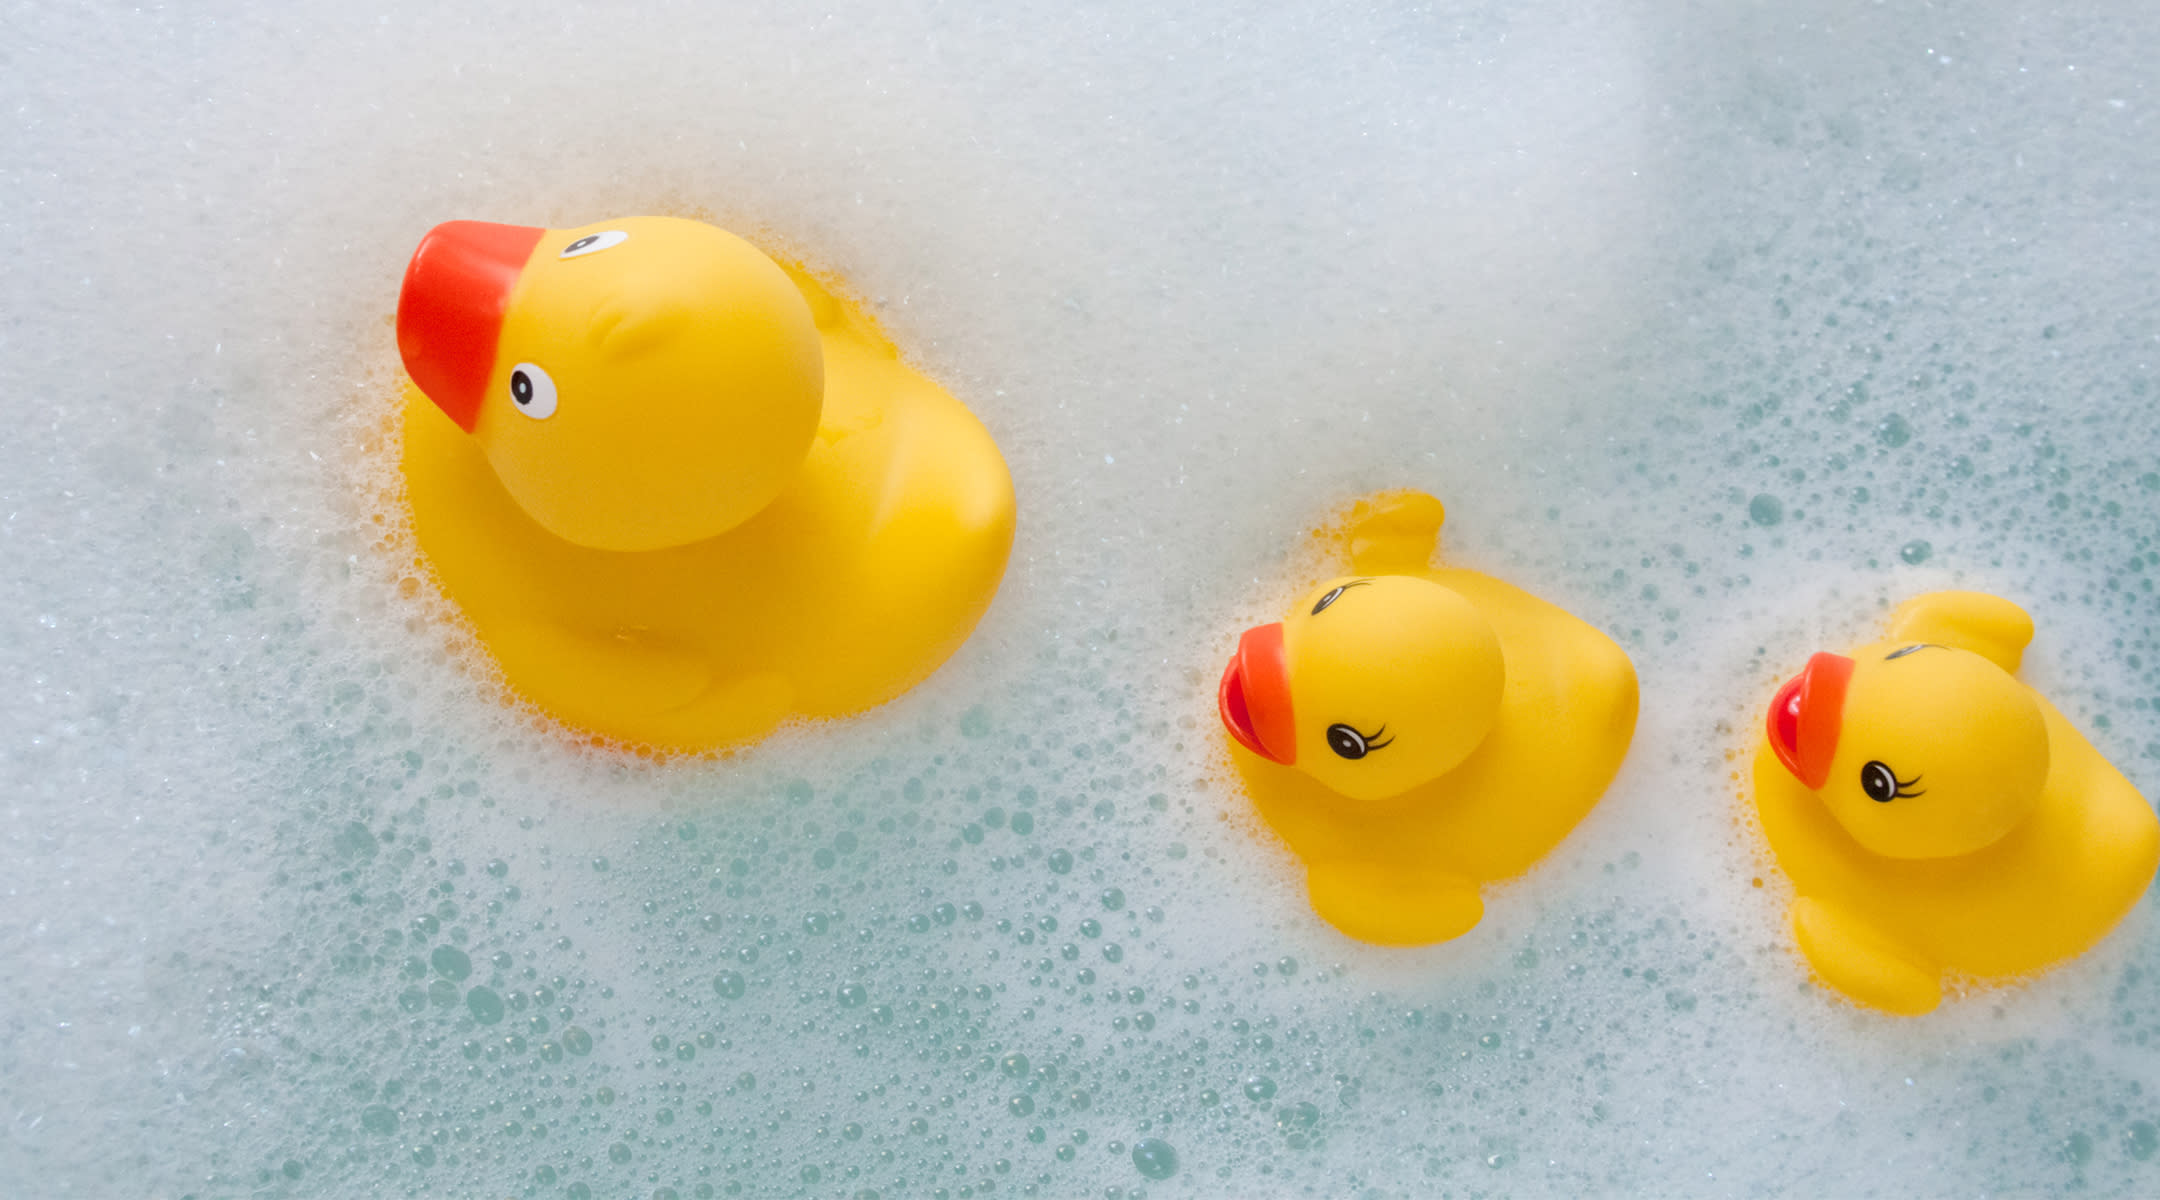 Study Finds Bacteria In Nearly Every Bath Toy